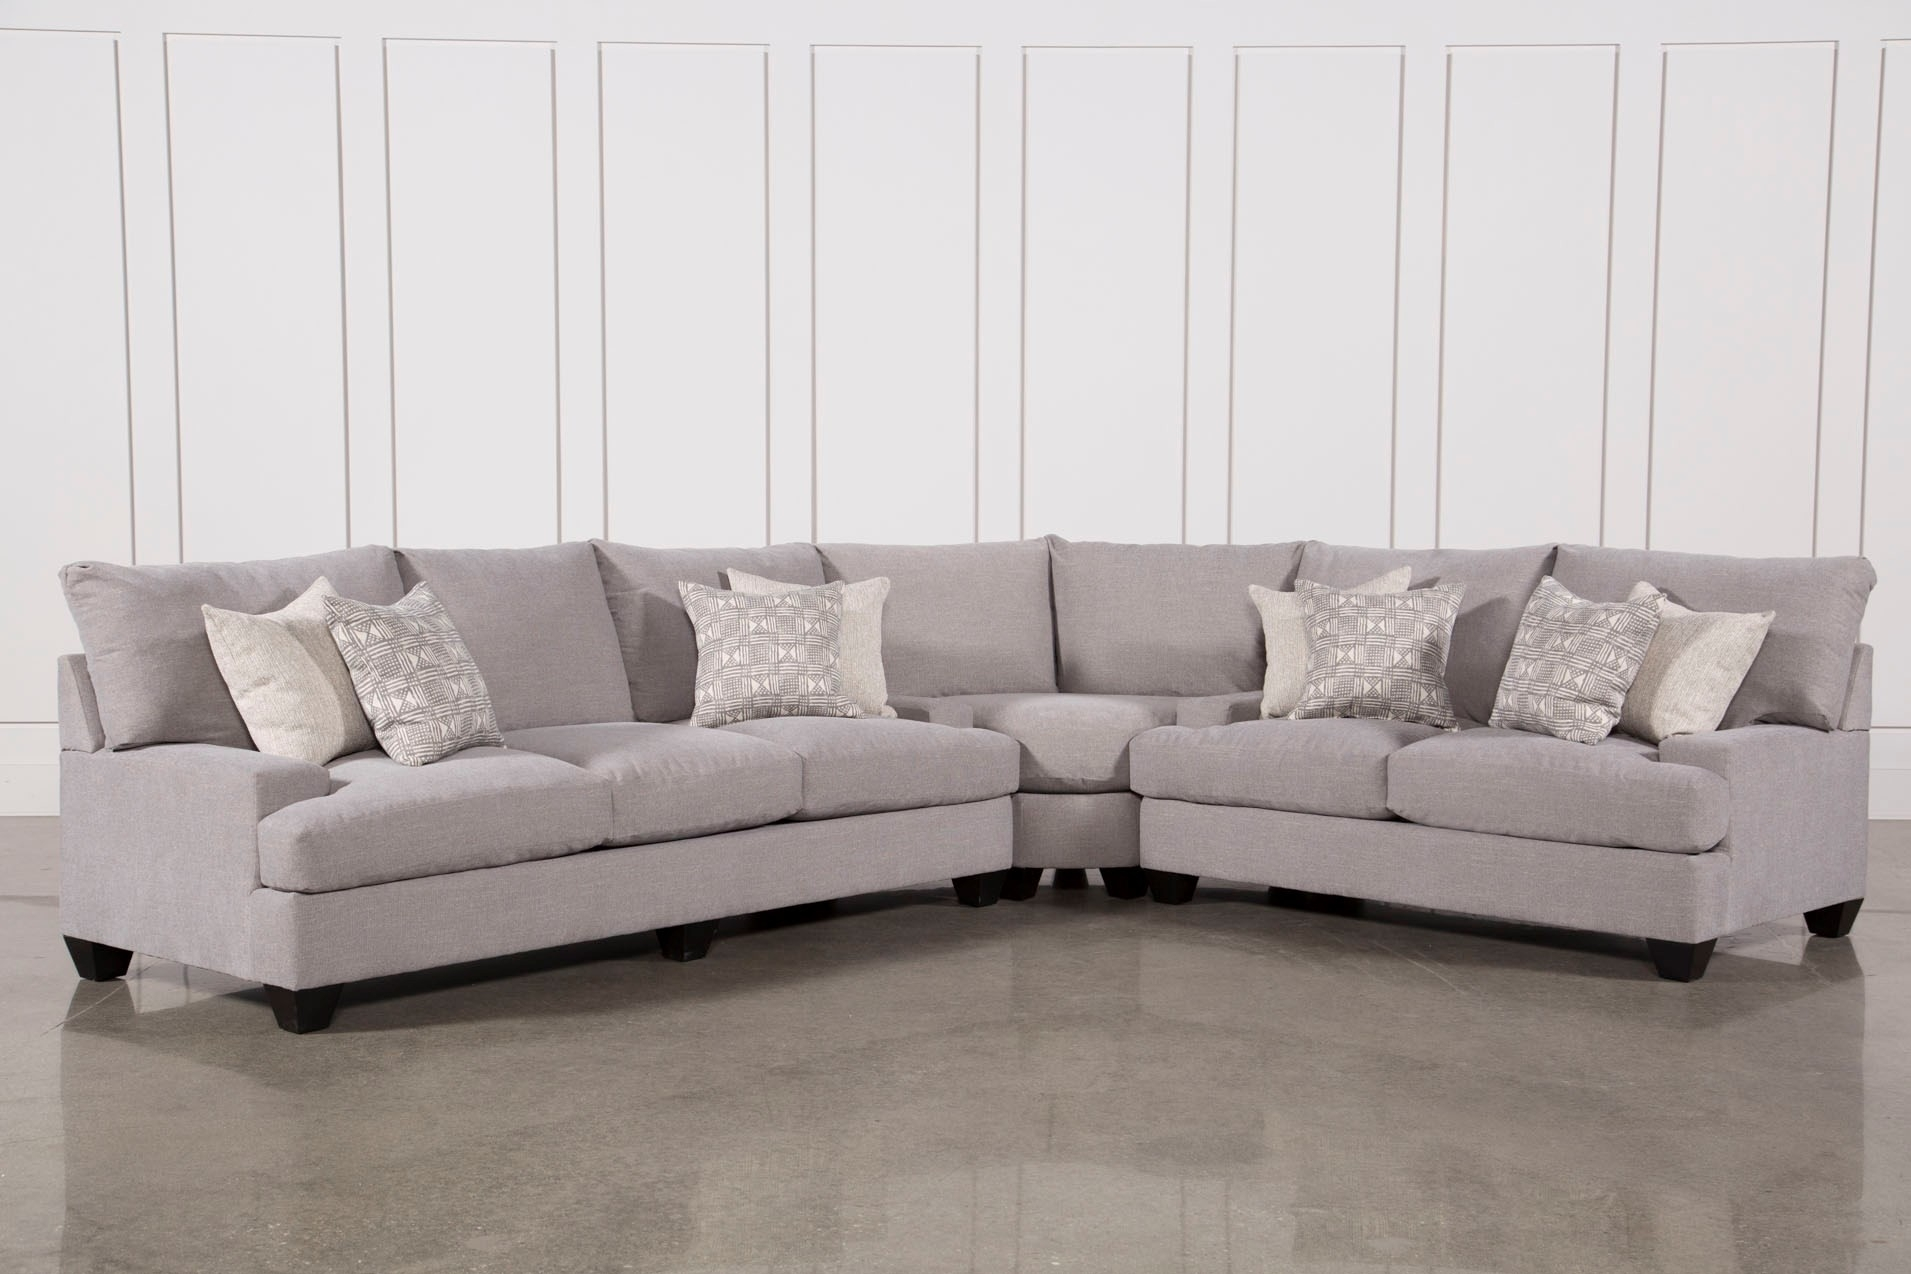 Living Spaces Sectional Alder 4 Piece Youtube Maxresdefault Throughout Alder 4 Piece Sectionals (Image 16 of 25)